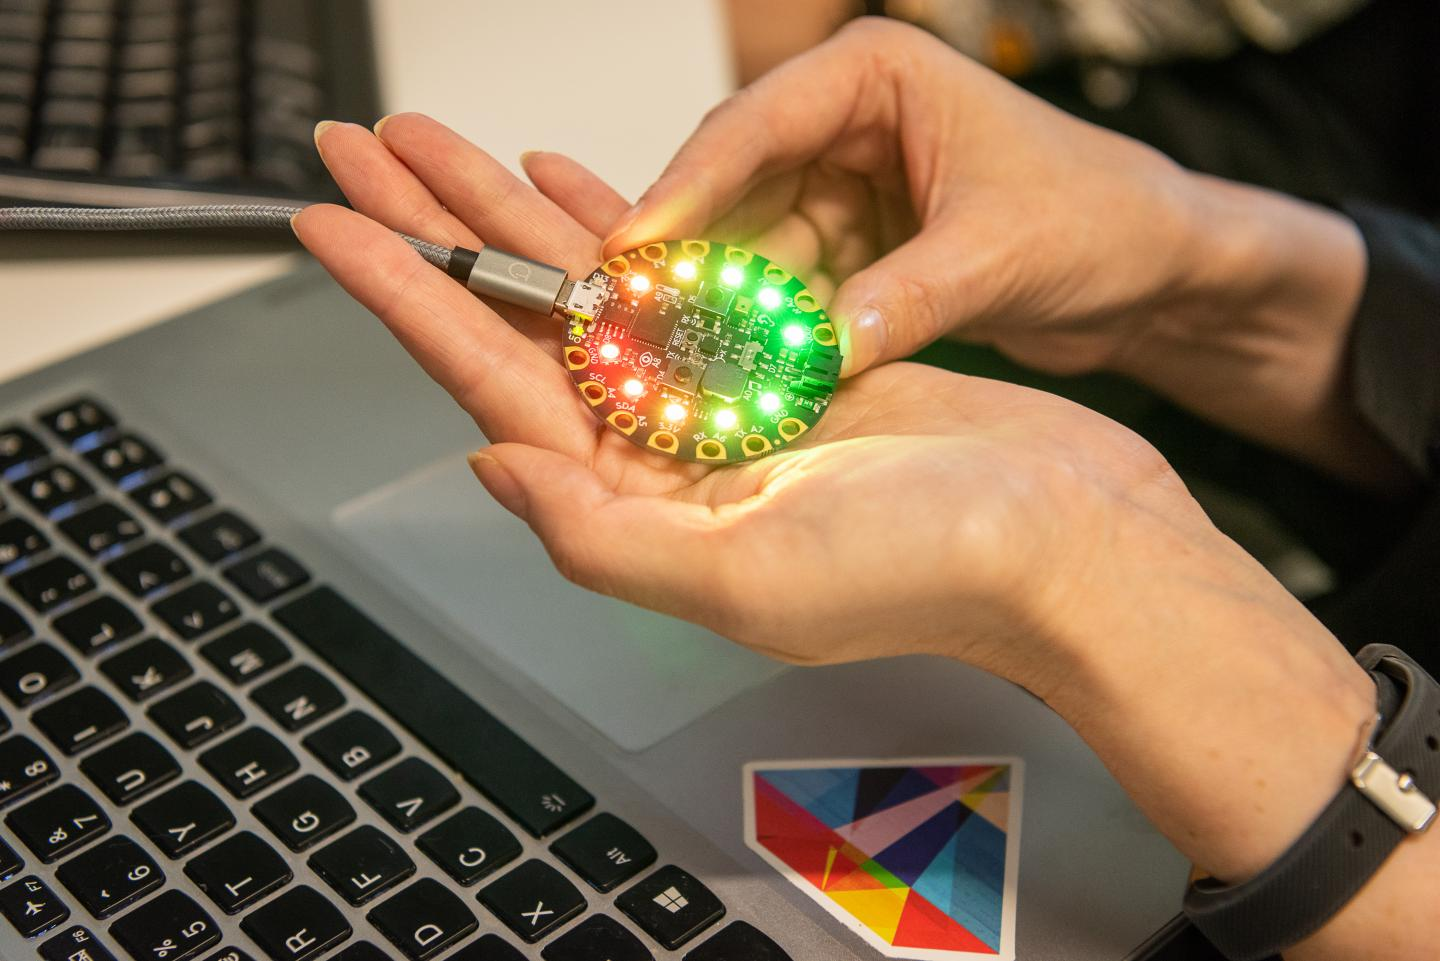 The Adafruit Circuit Playground Will Nudge People into Better Cyber Security Habits